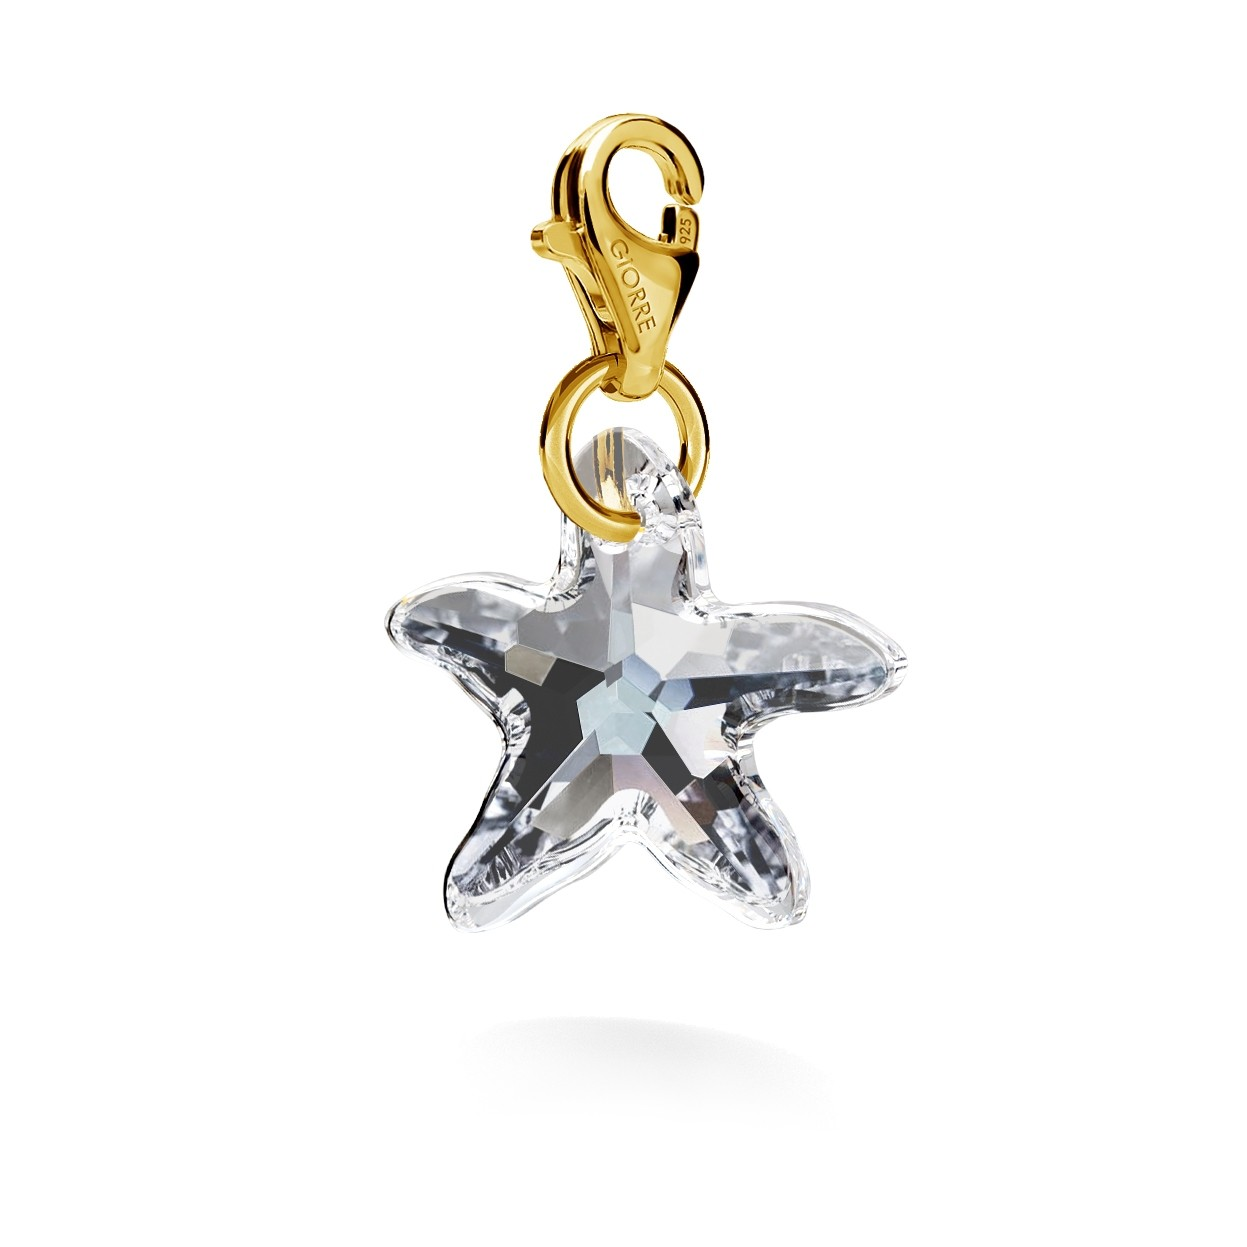 CHARM 53, SWAROVSKI 6721 MM 16 CRYSTAL, STERLING SILVER (925) RHODIUM OR GOLD PLATED